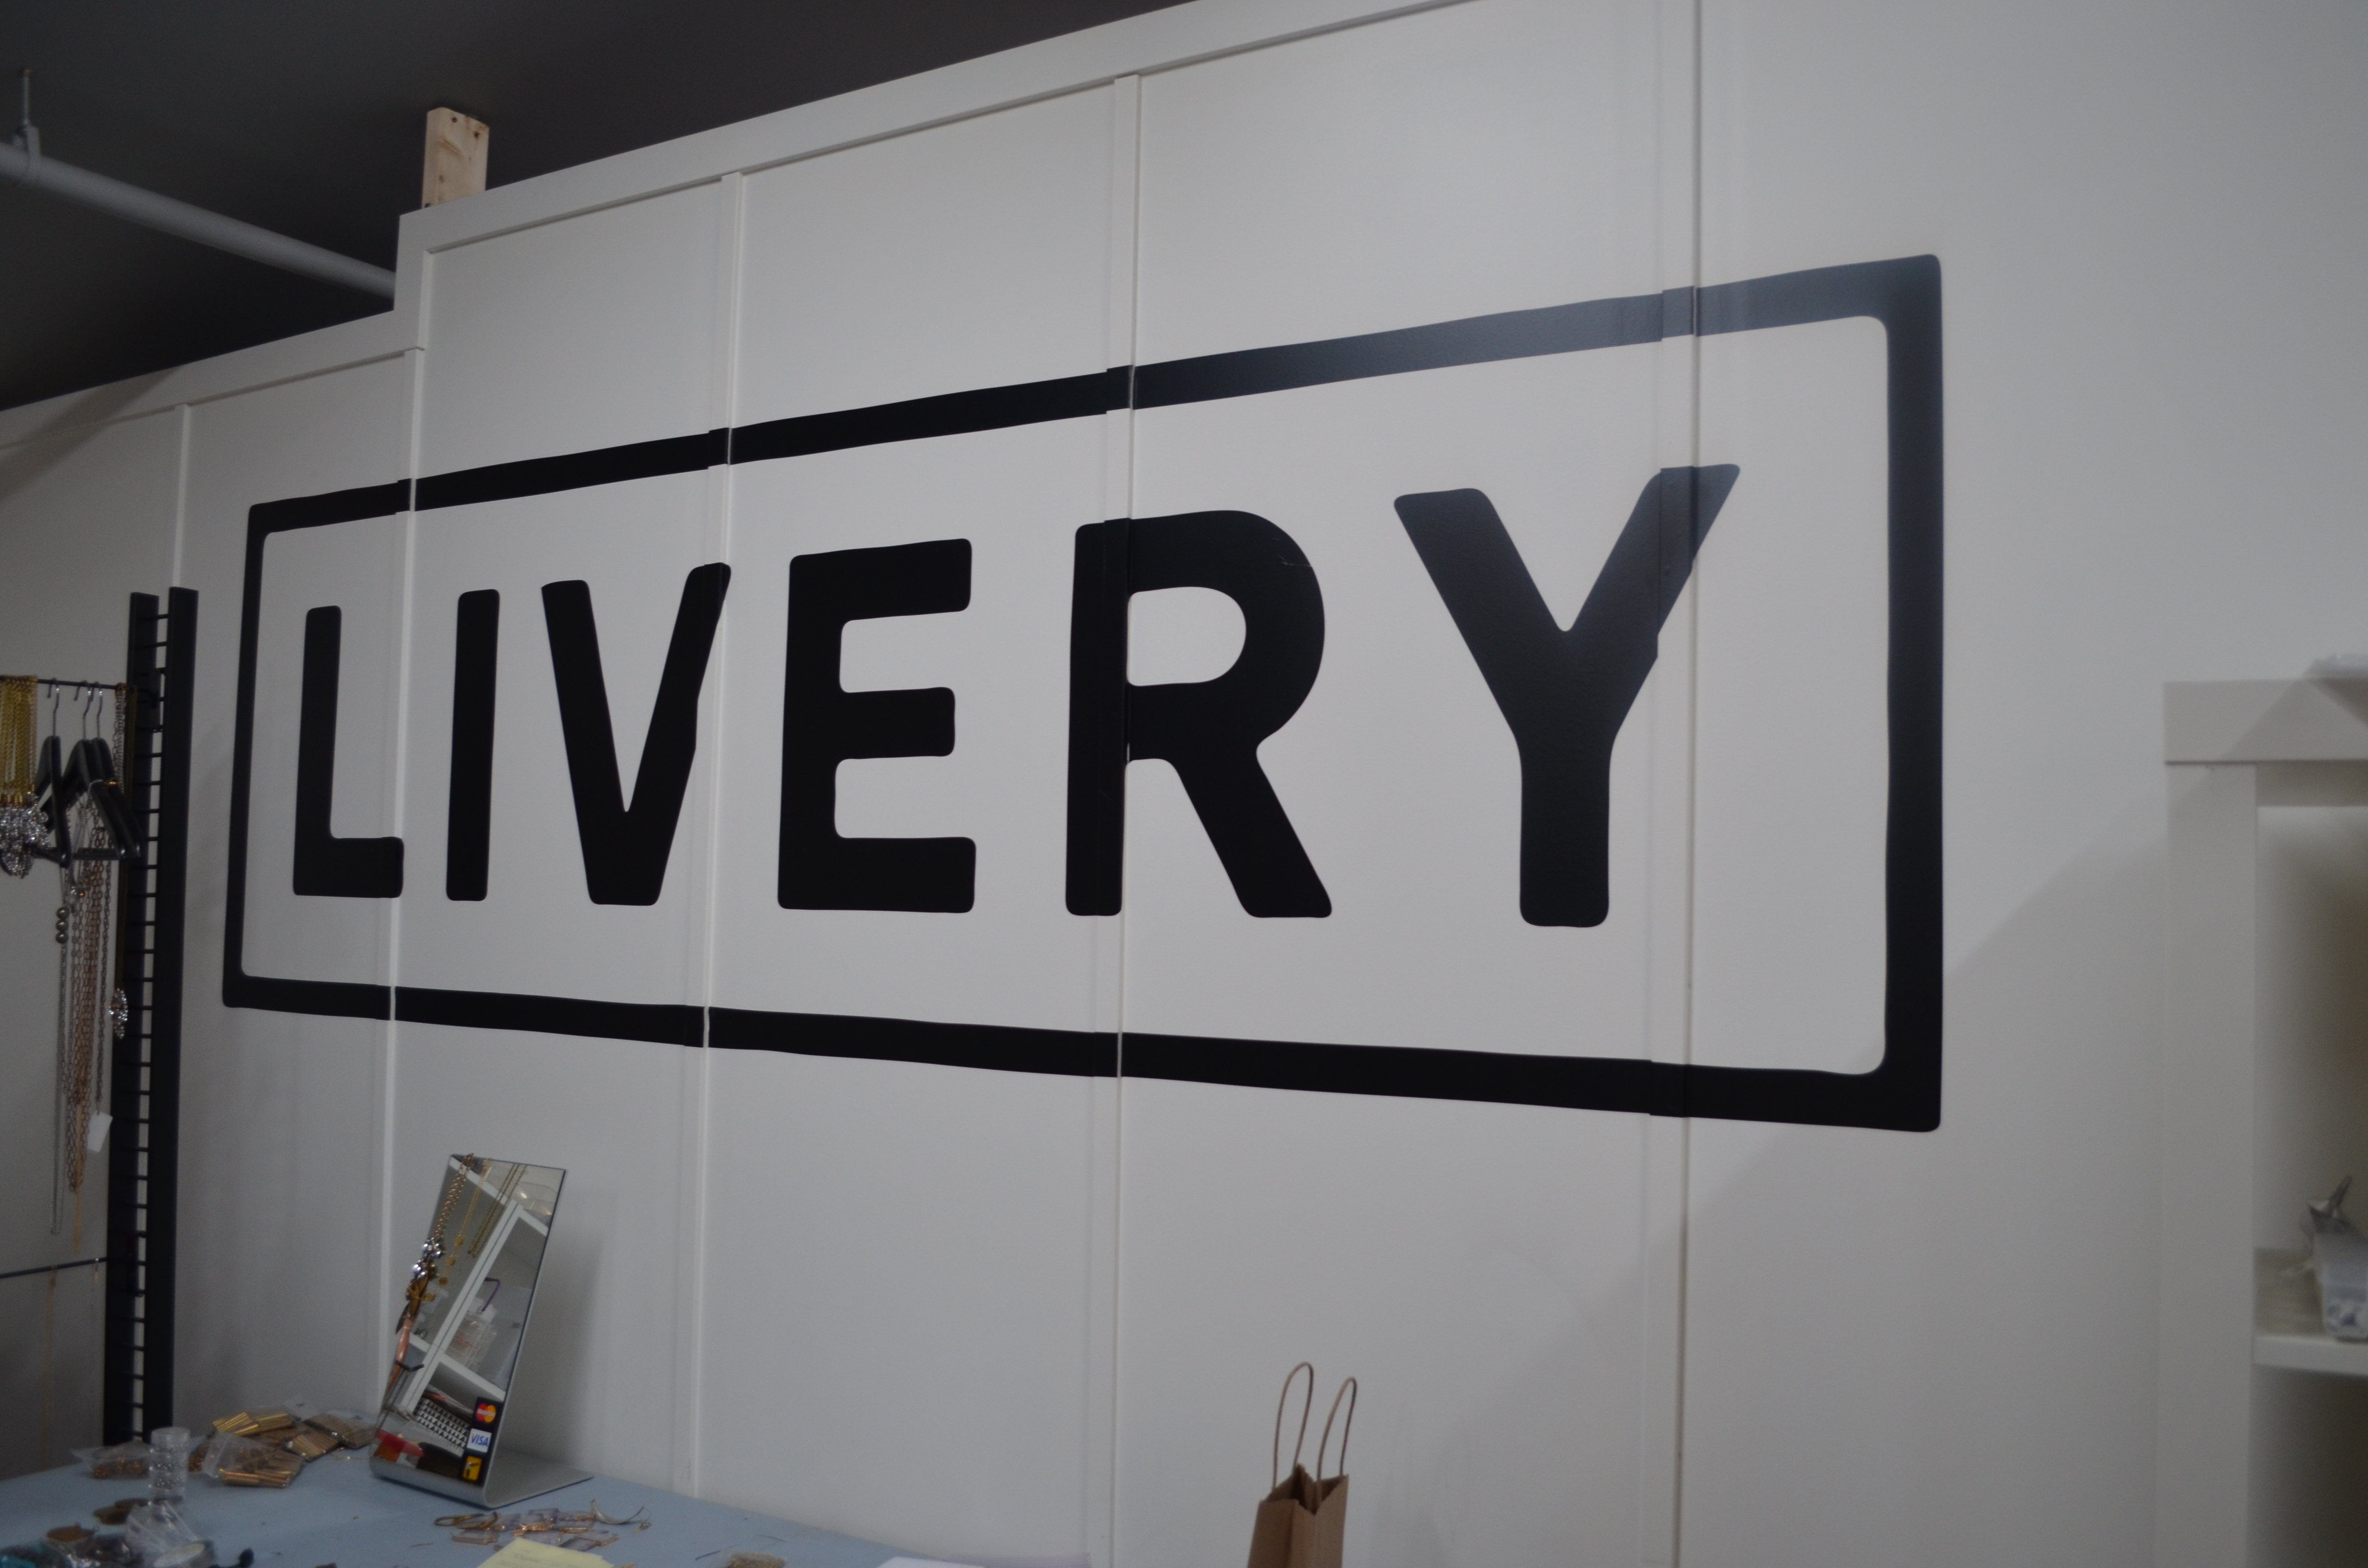 the livery shop